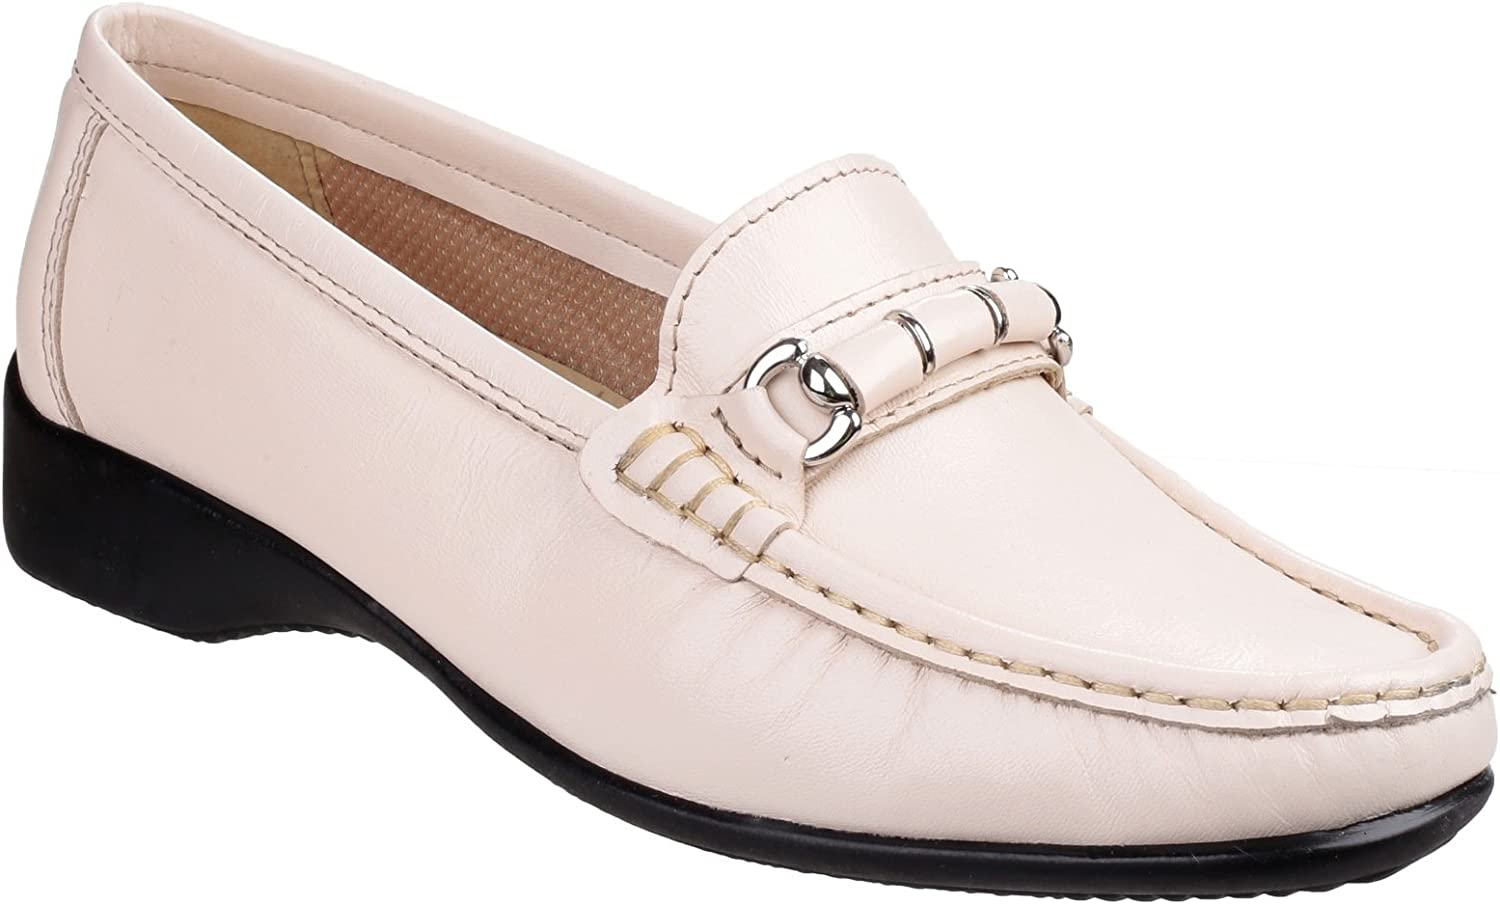 Cotswold Barrington Ladies Loafer Slip On shoes